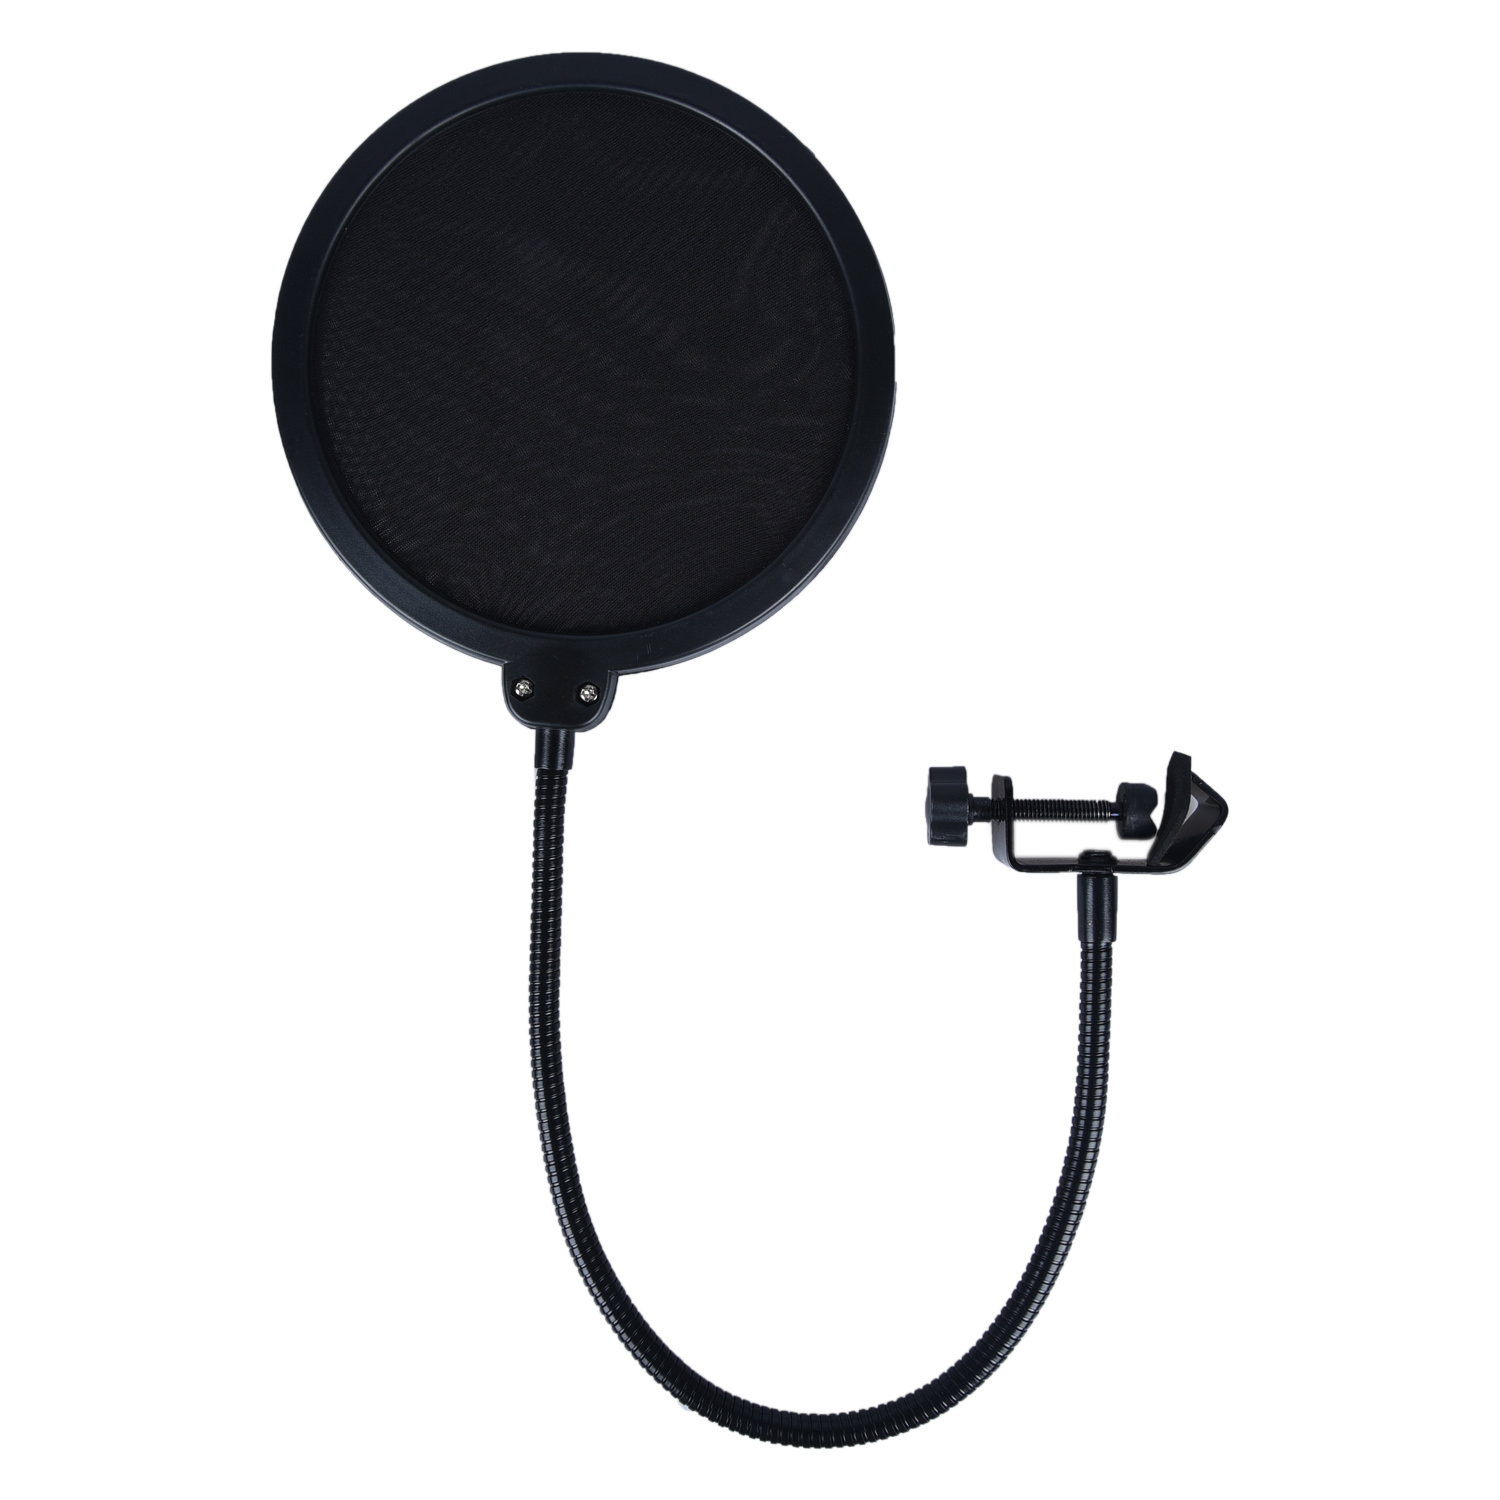 Kadence PS01 Pop Filter